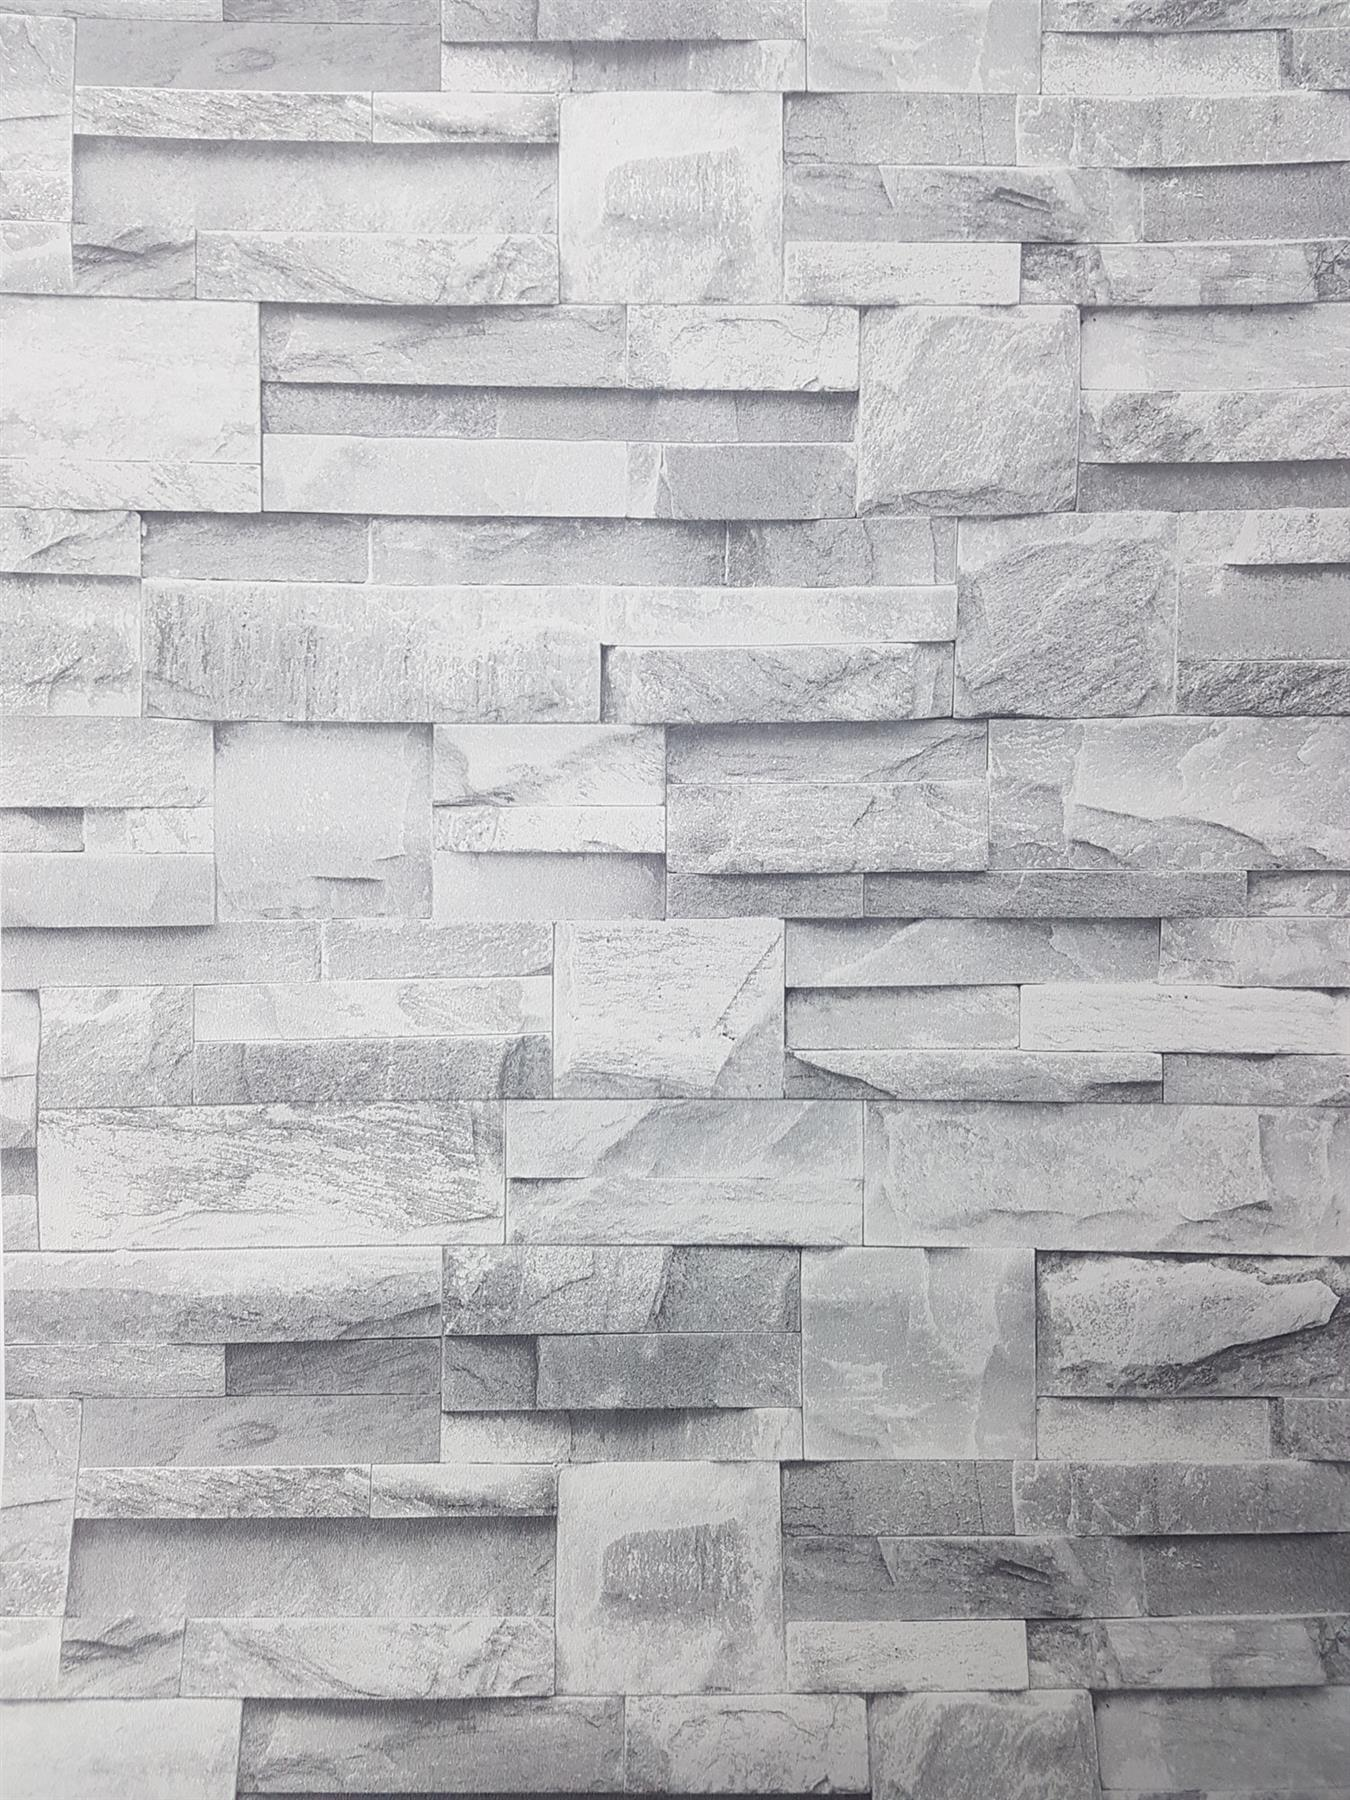 3D Slate Stone Brick Effect Wallpaper Colorful Rock Realistic Vintage Textured